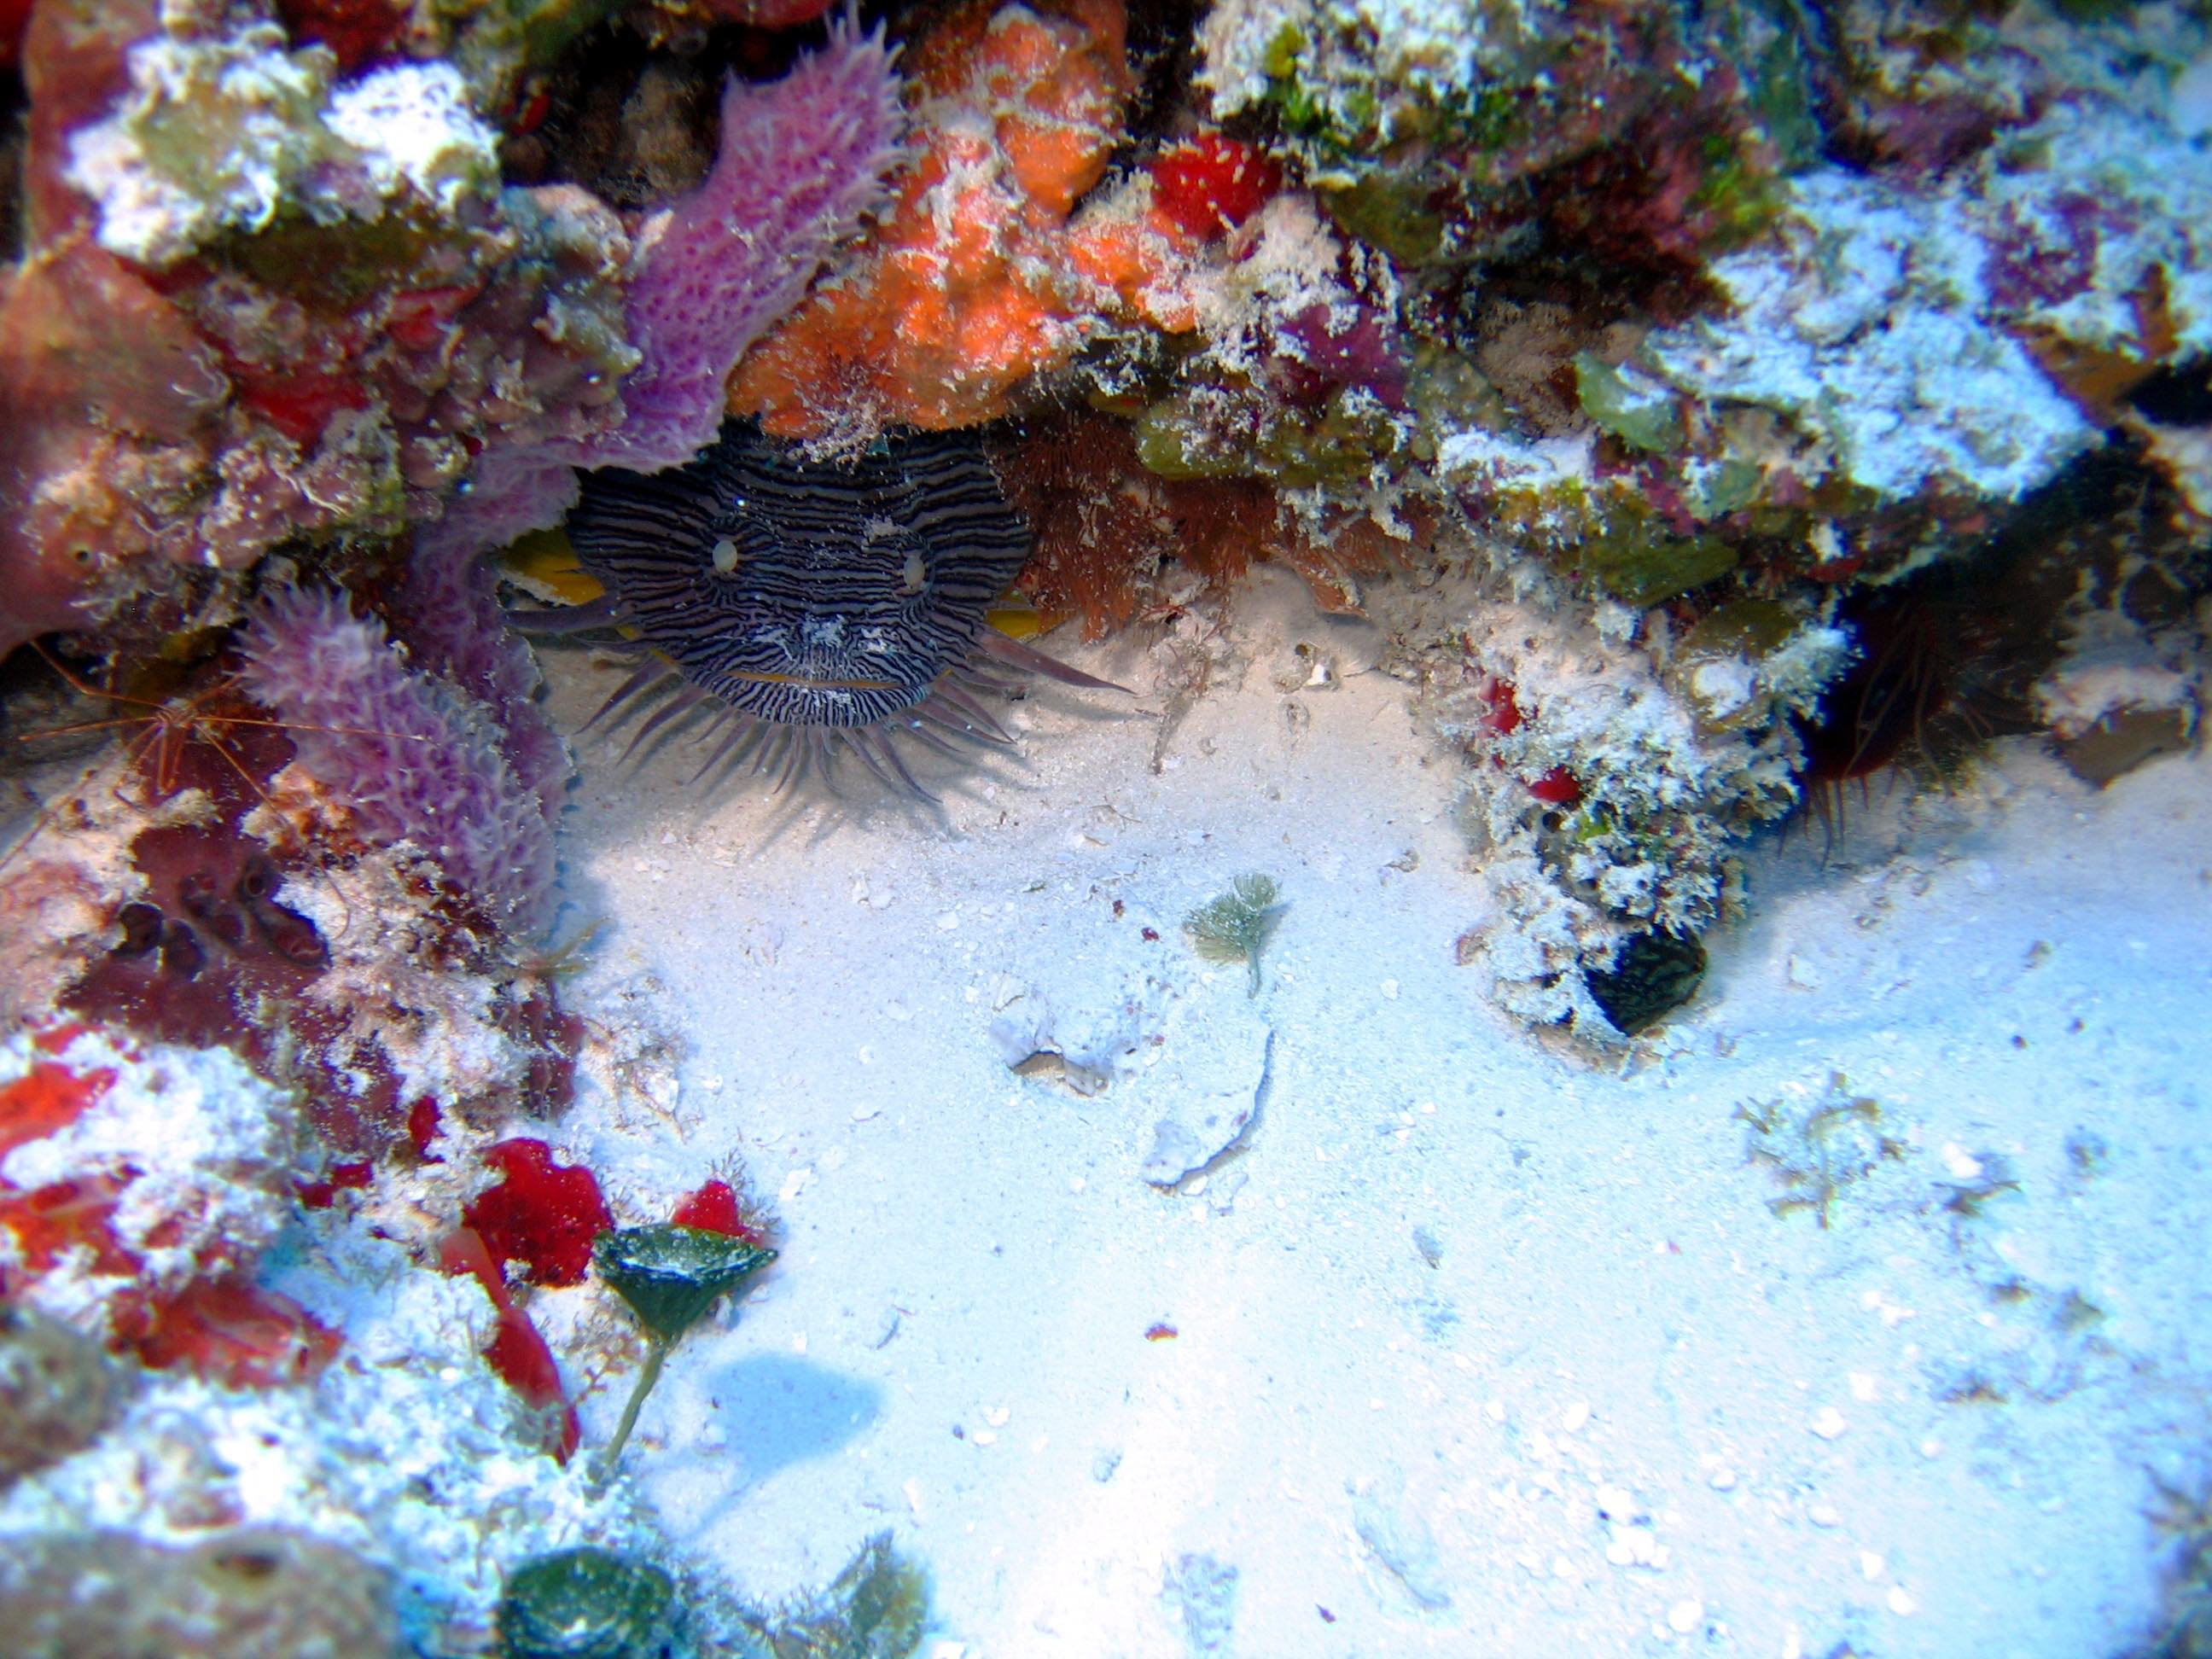 Cozumel splendid toadfish - left